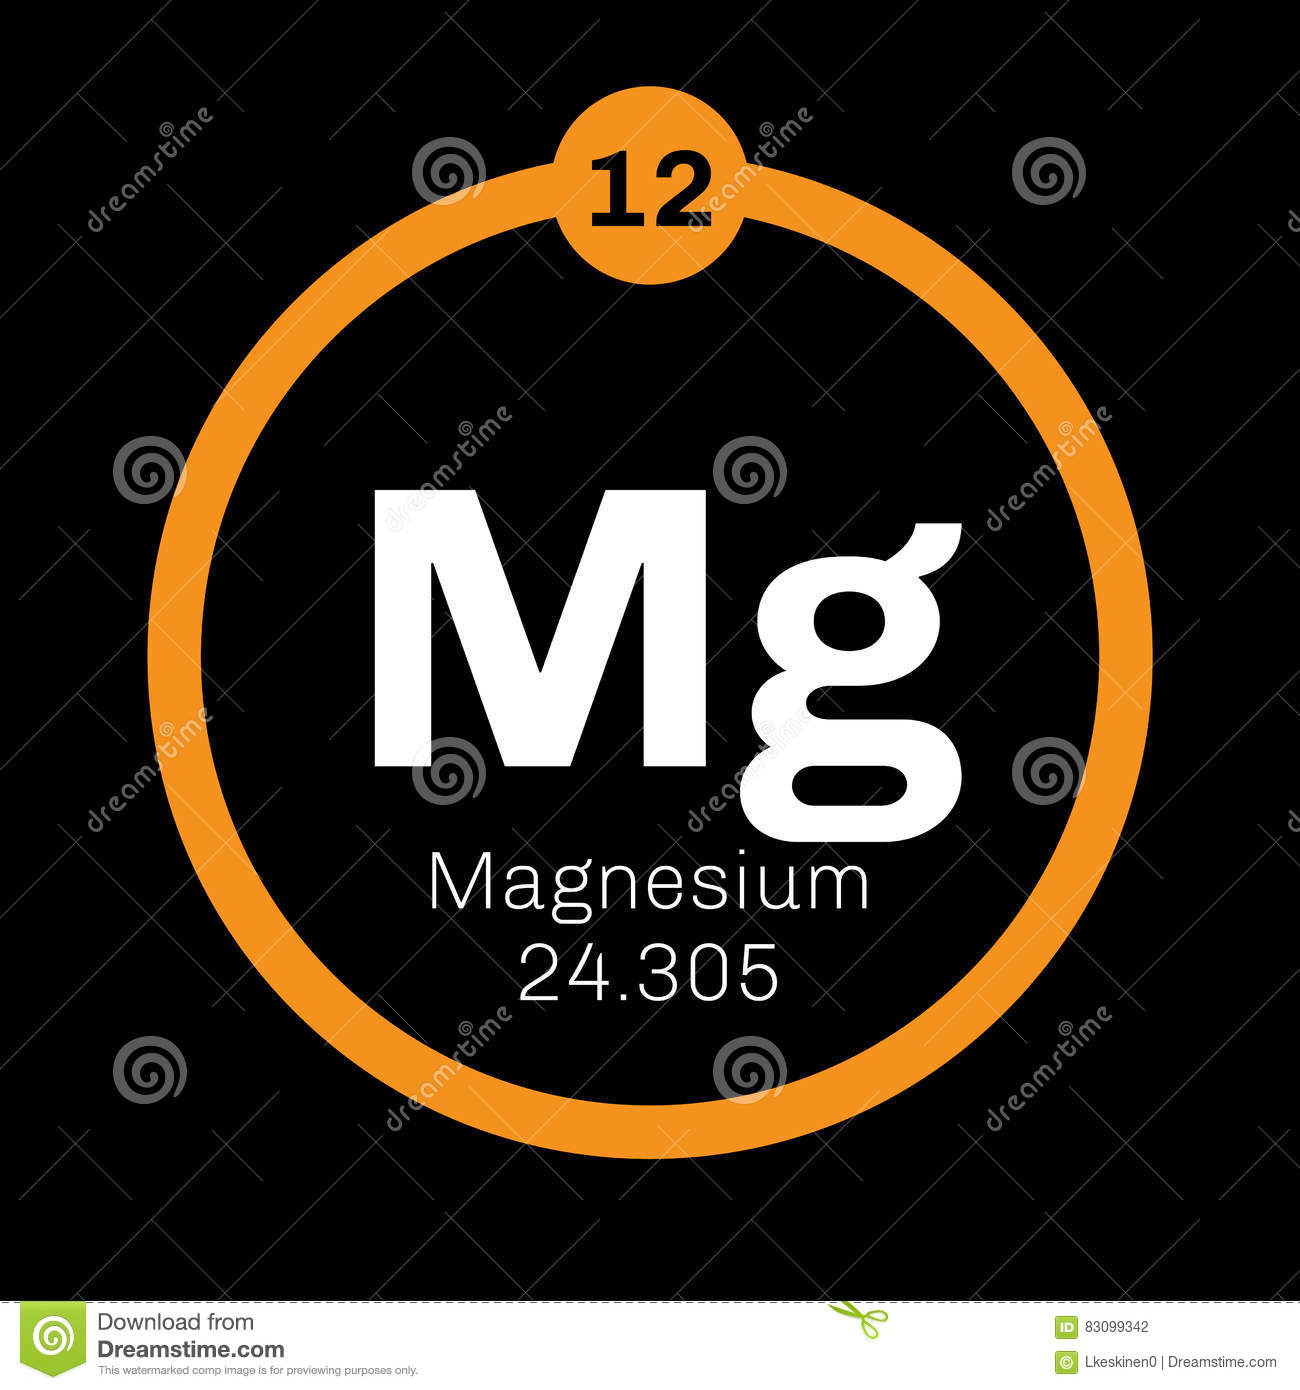 Magnesium chemisch element